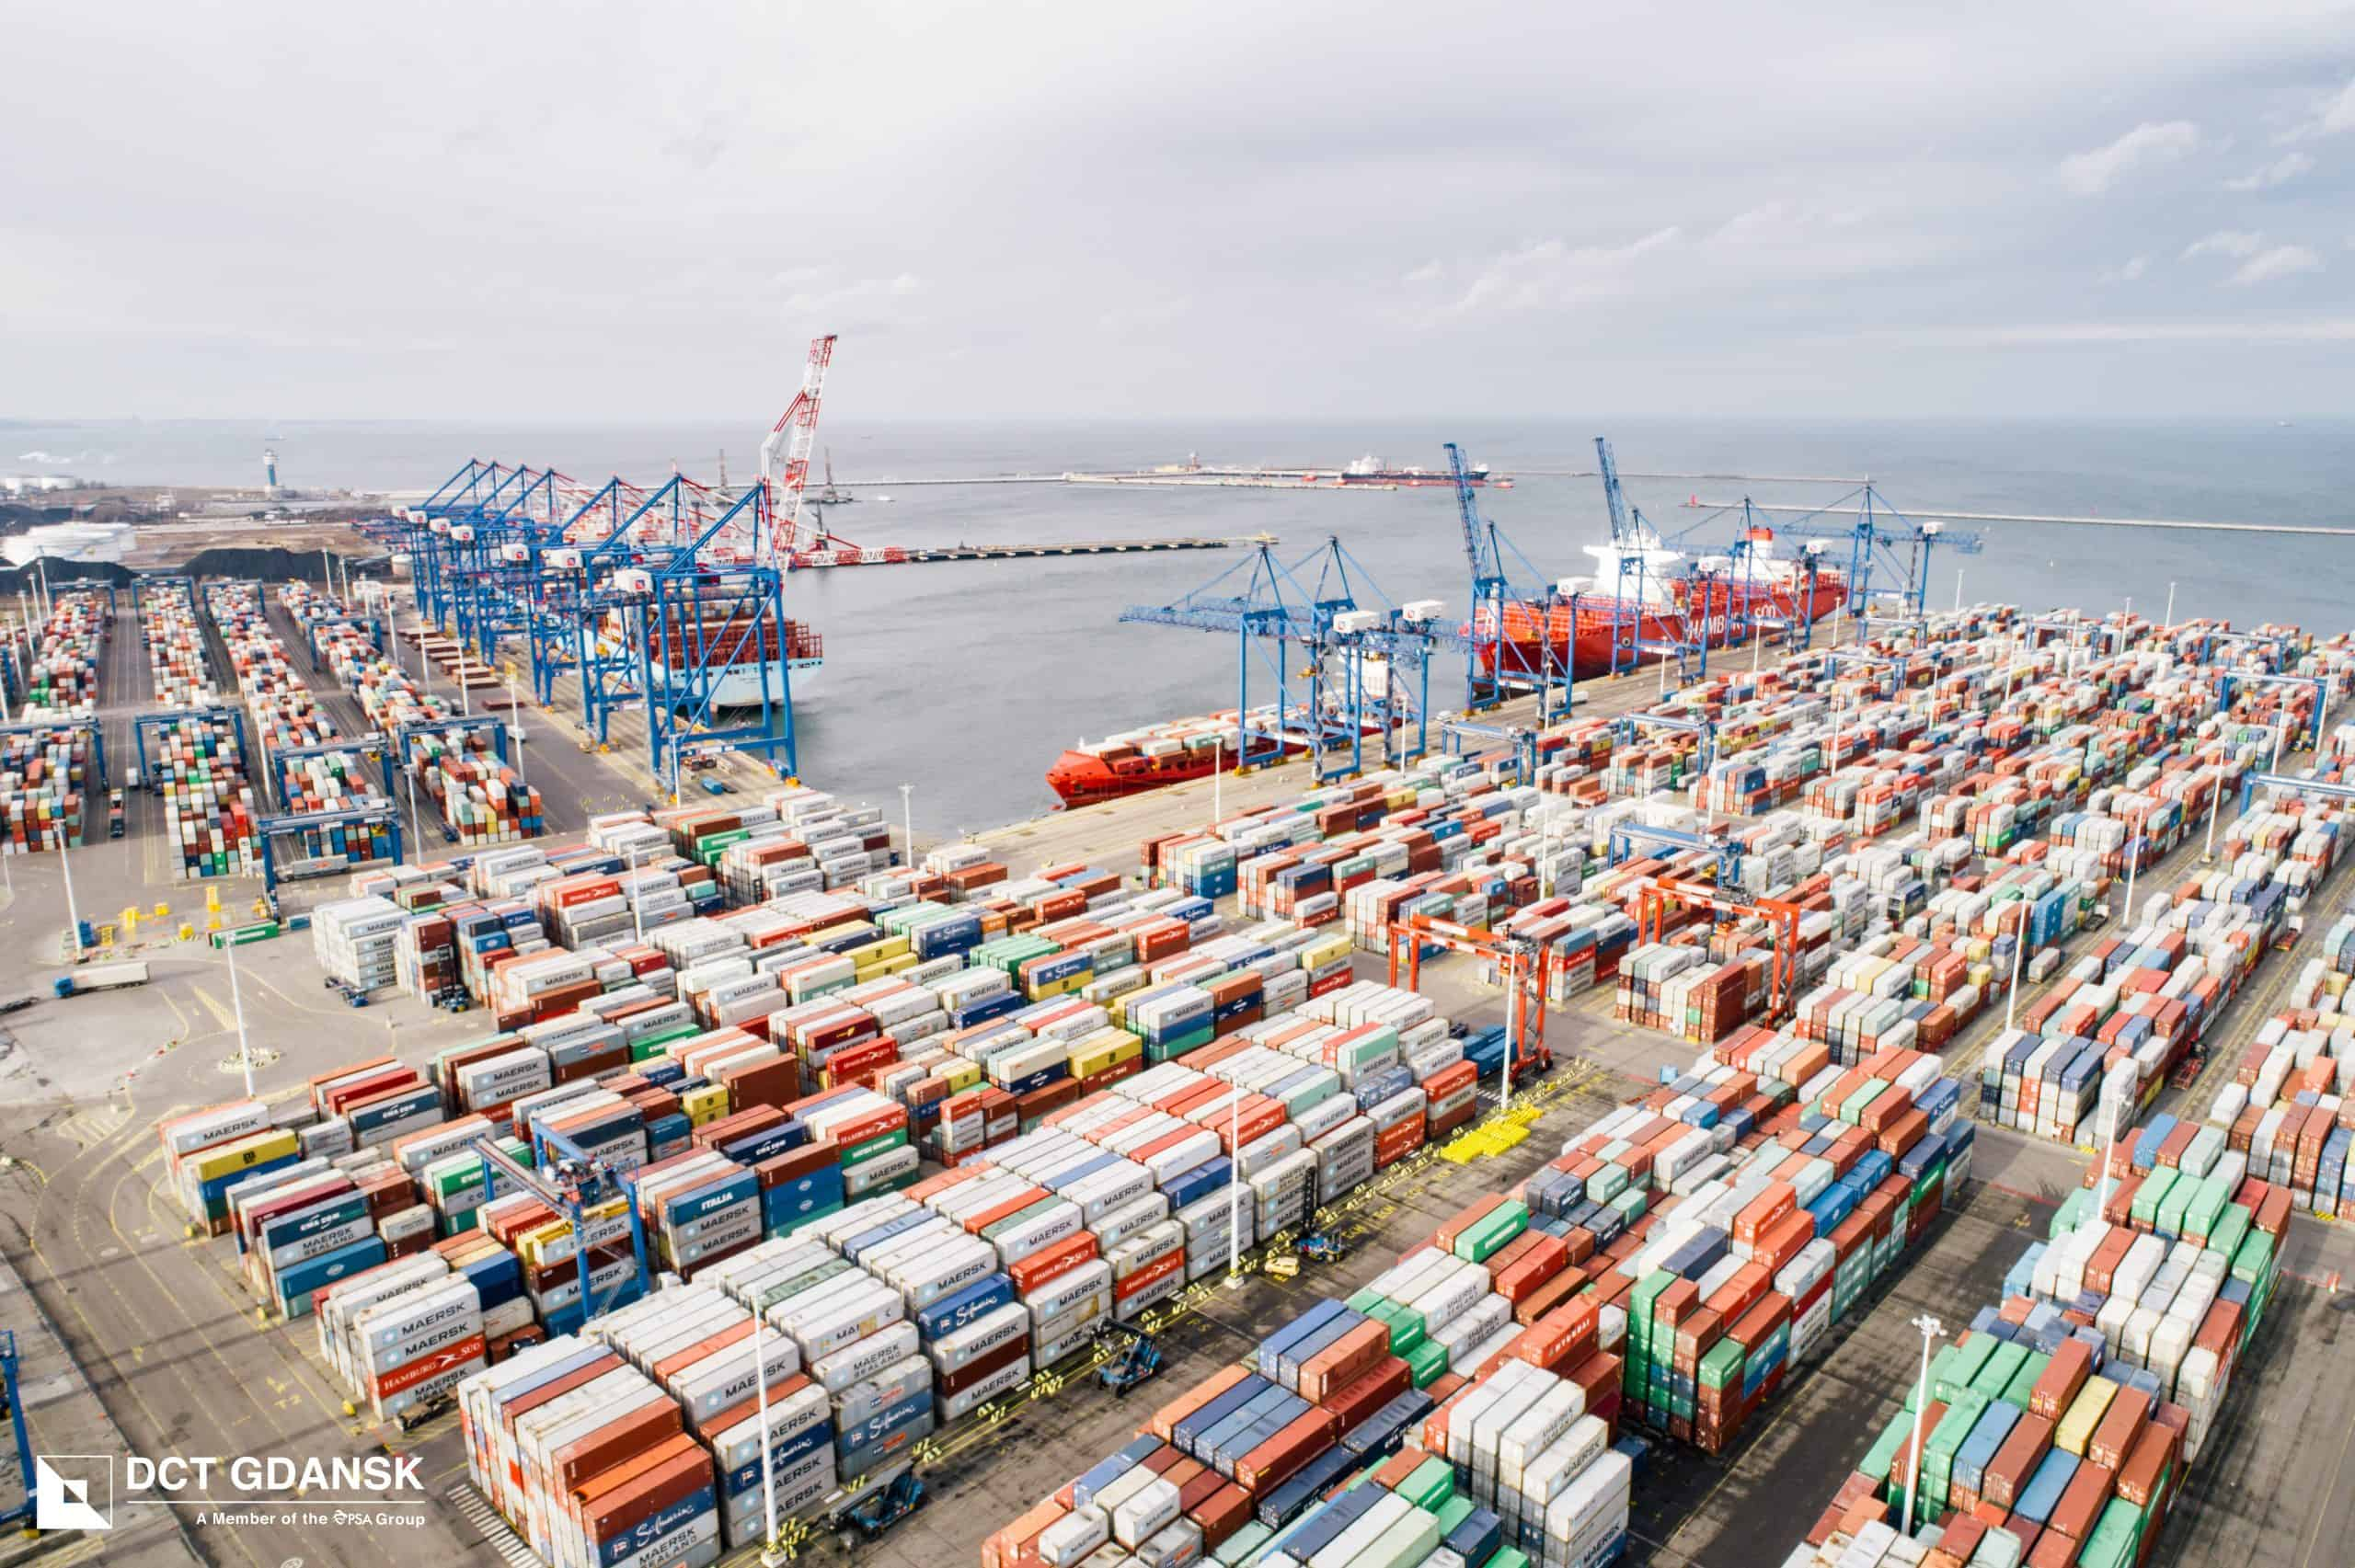 Port of Gdansk: first quarter results hit by COVID-19